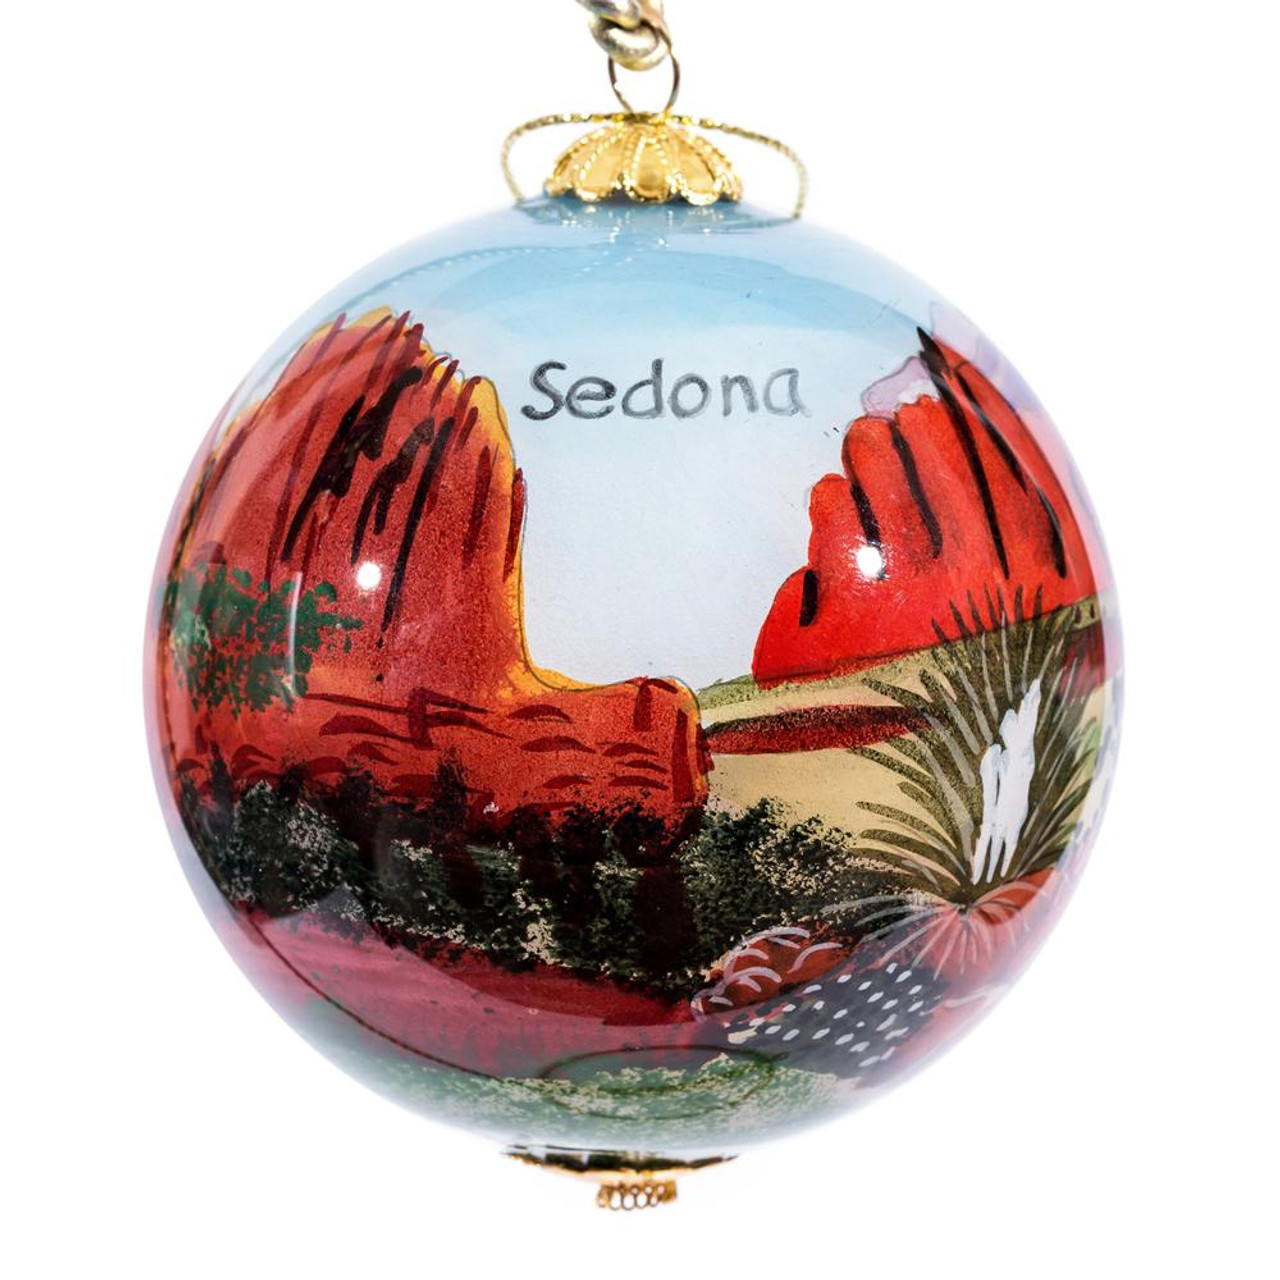 "Sedona Red Rock crossing - 3"" Ornament Set of 2"